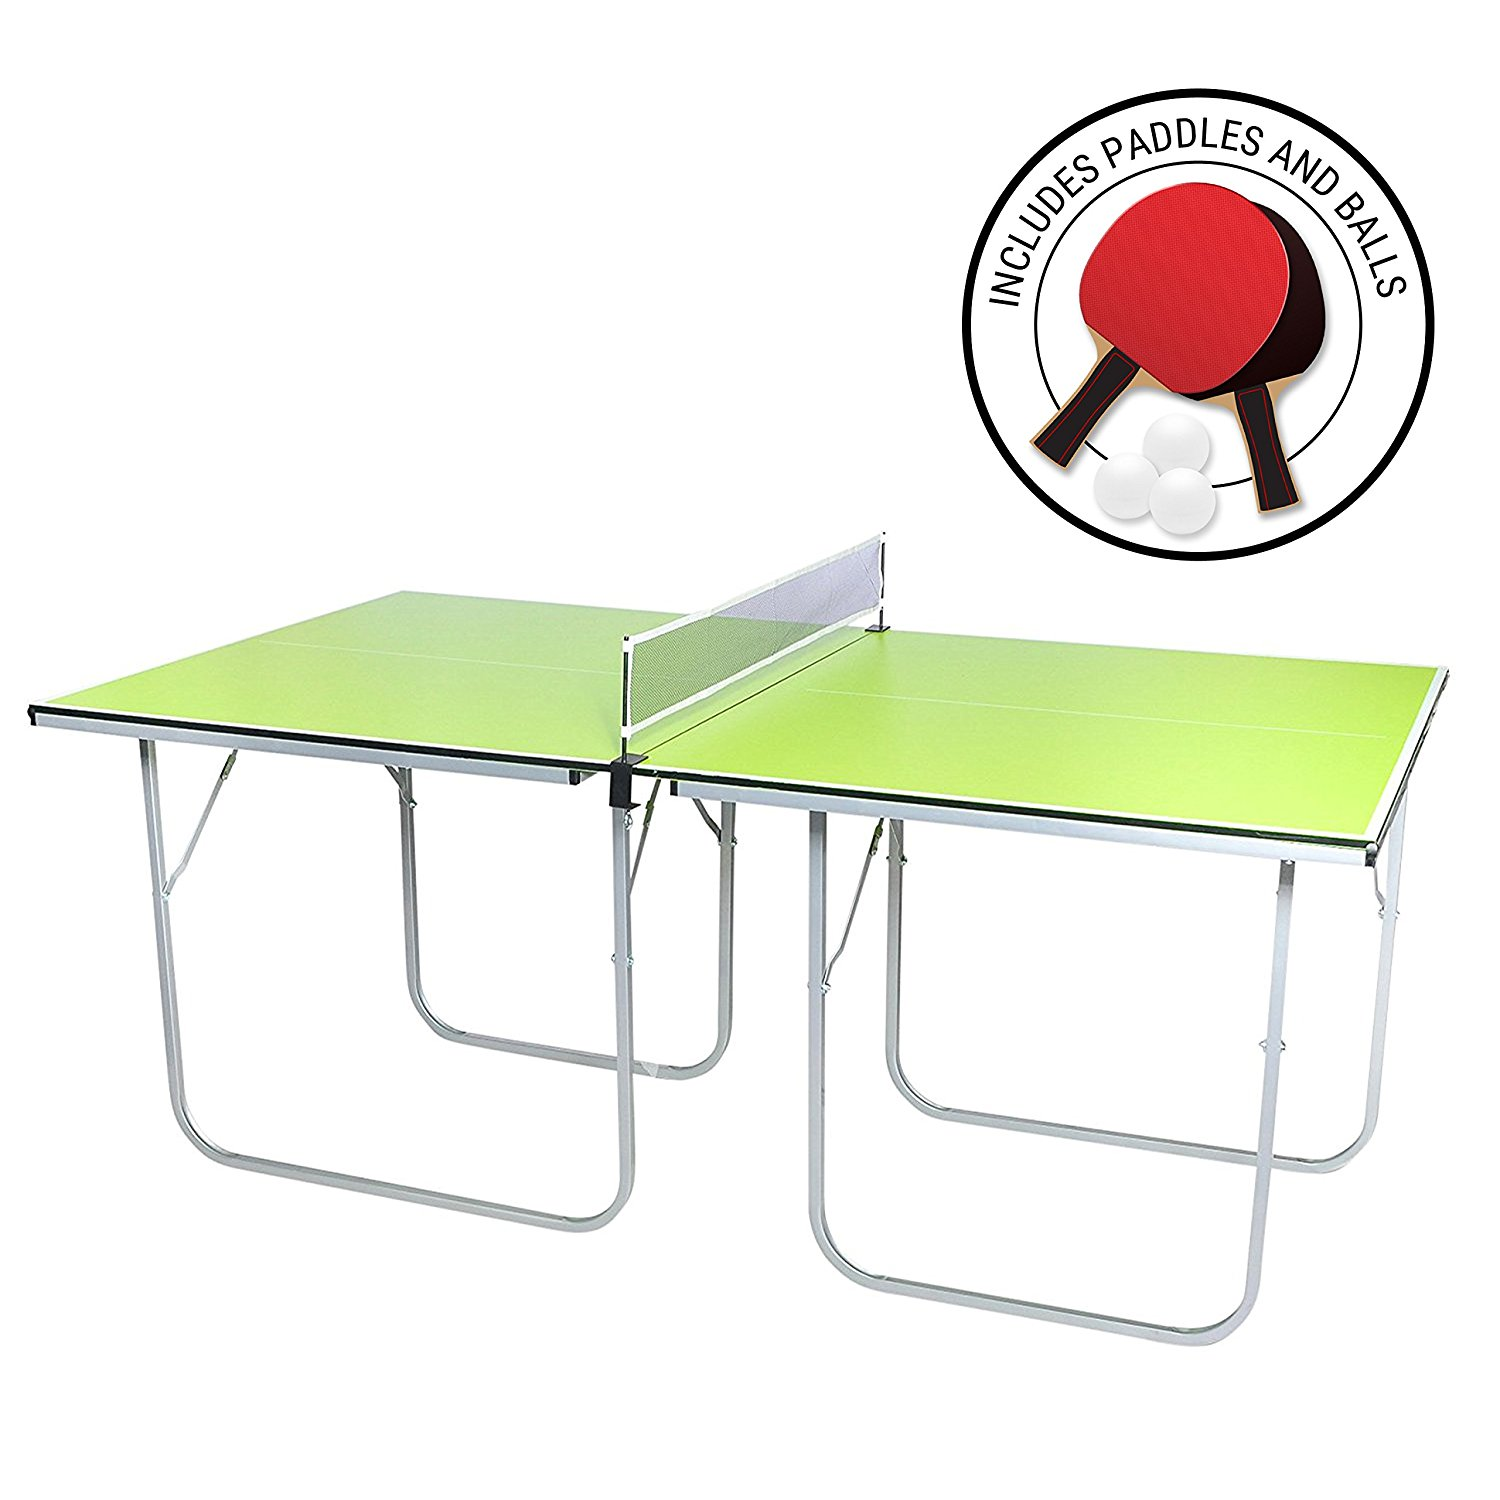 <b>Milliard Mini-Pong<br>Portable Tennis Table</b><br>40 x 70in. includes net,<br>paddles, & balls